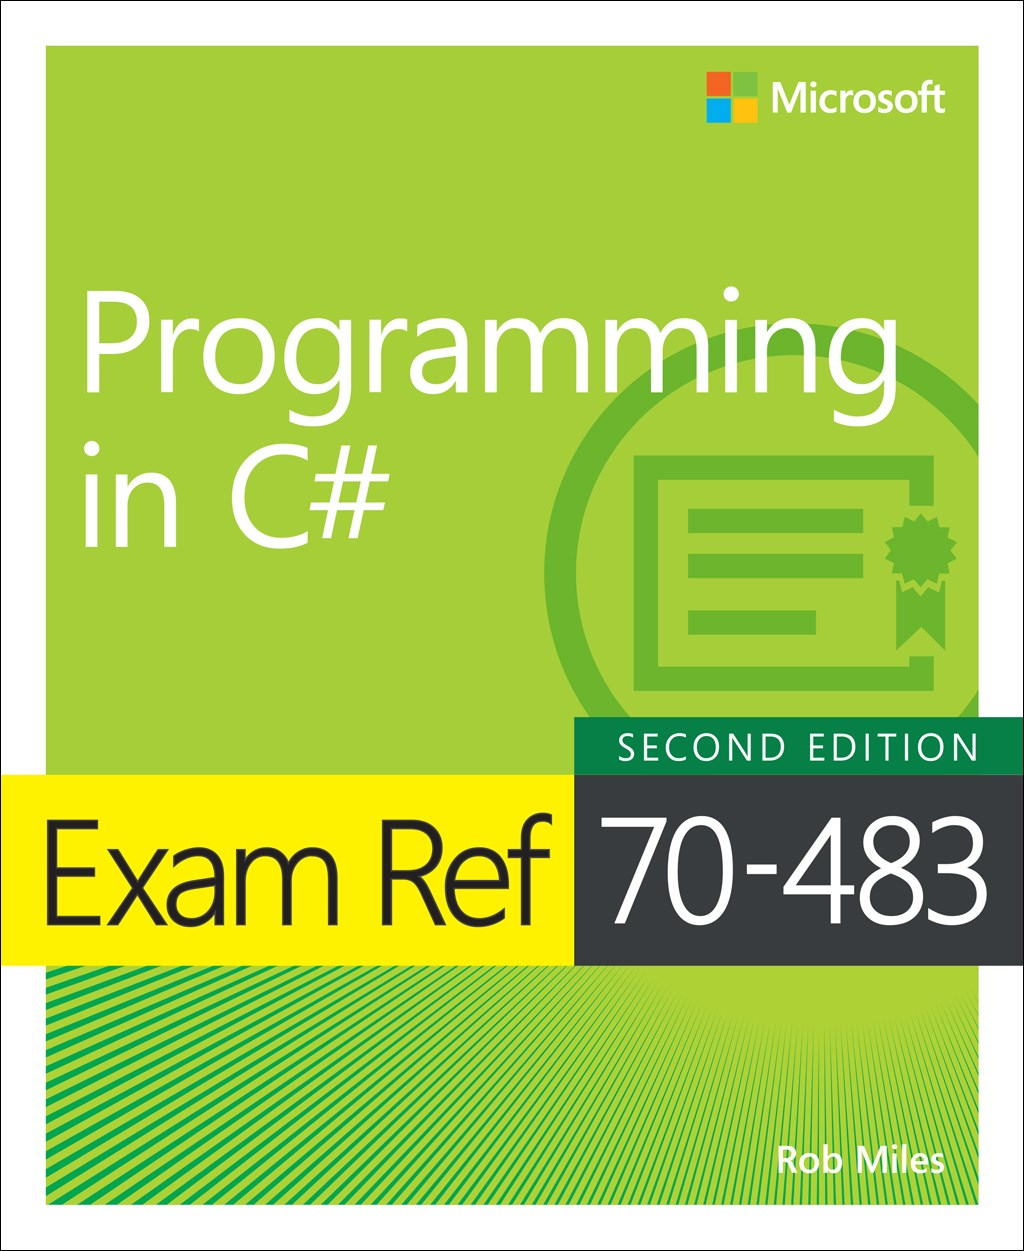 Exam Ref 70-483 Programming in C#, 2nd Edition.